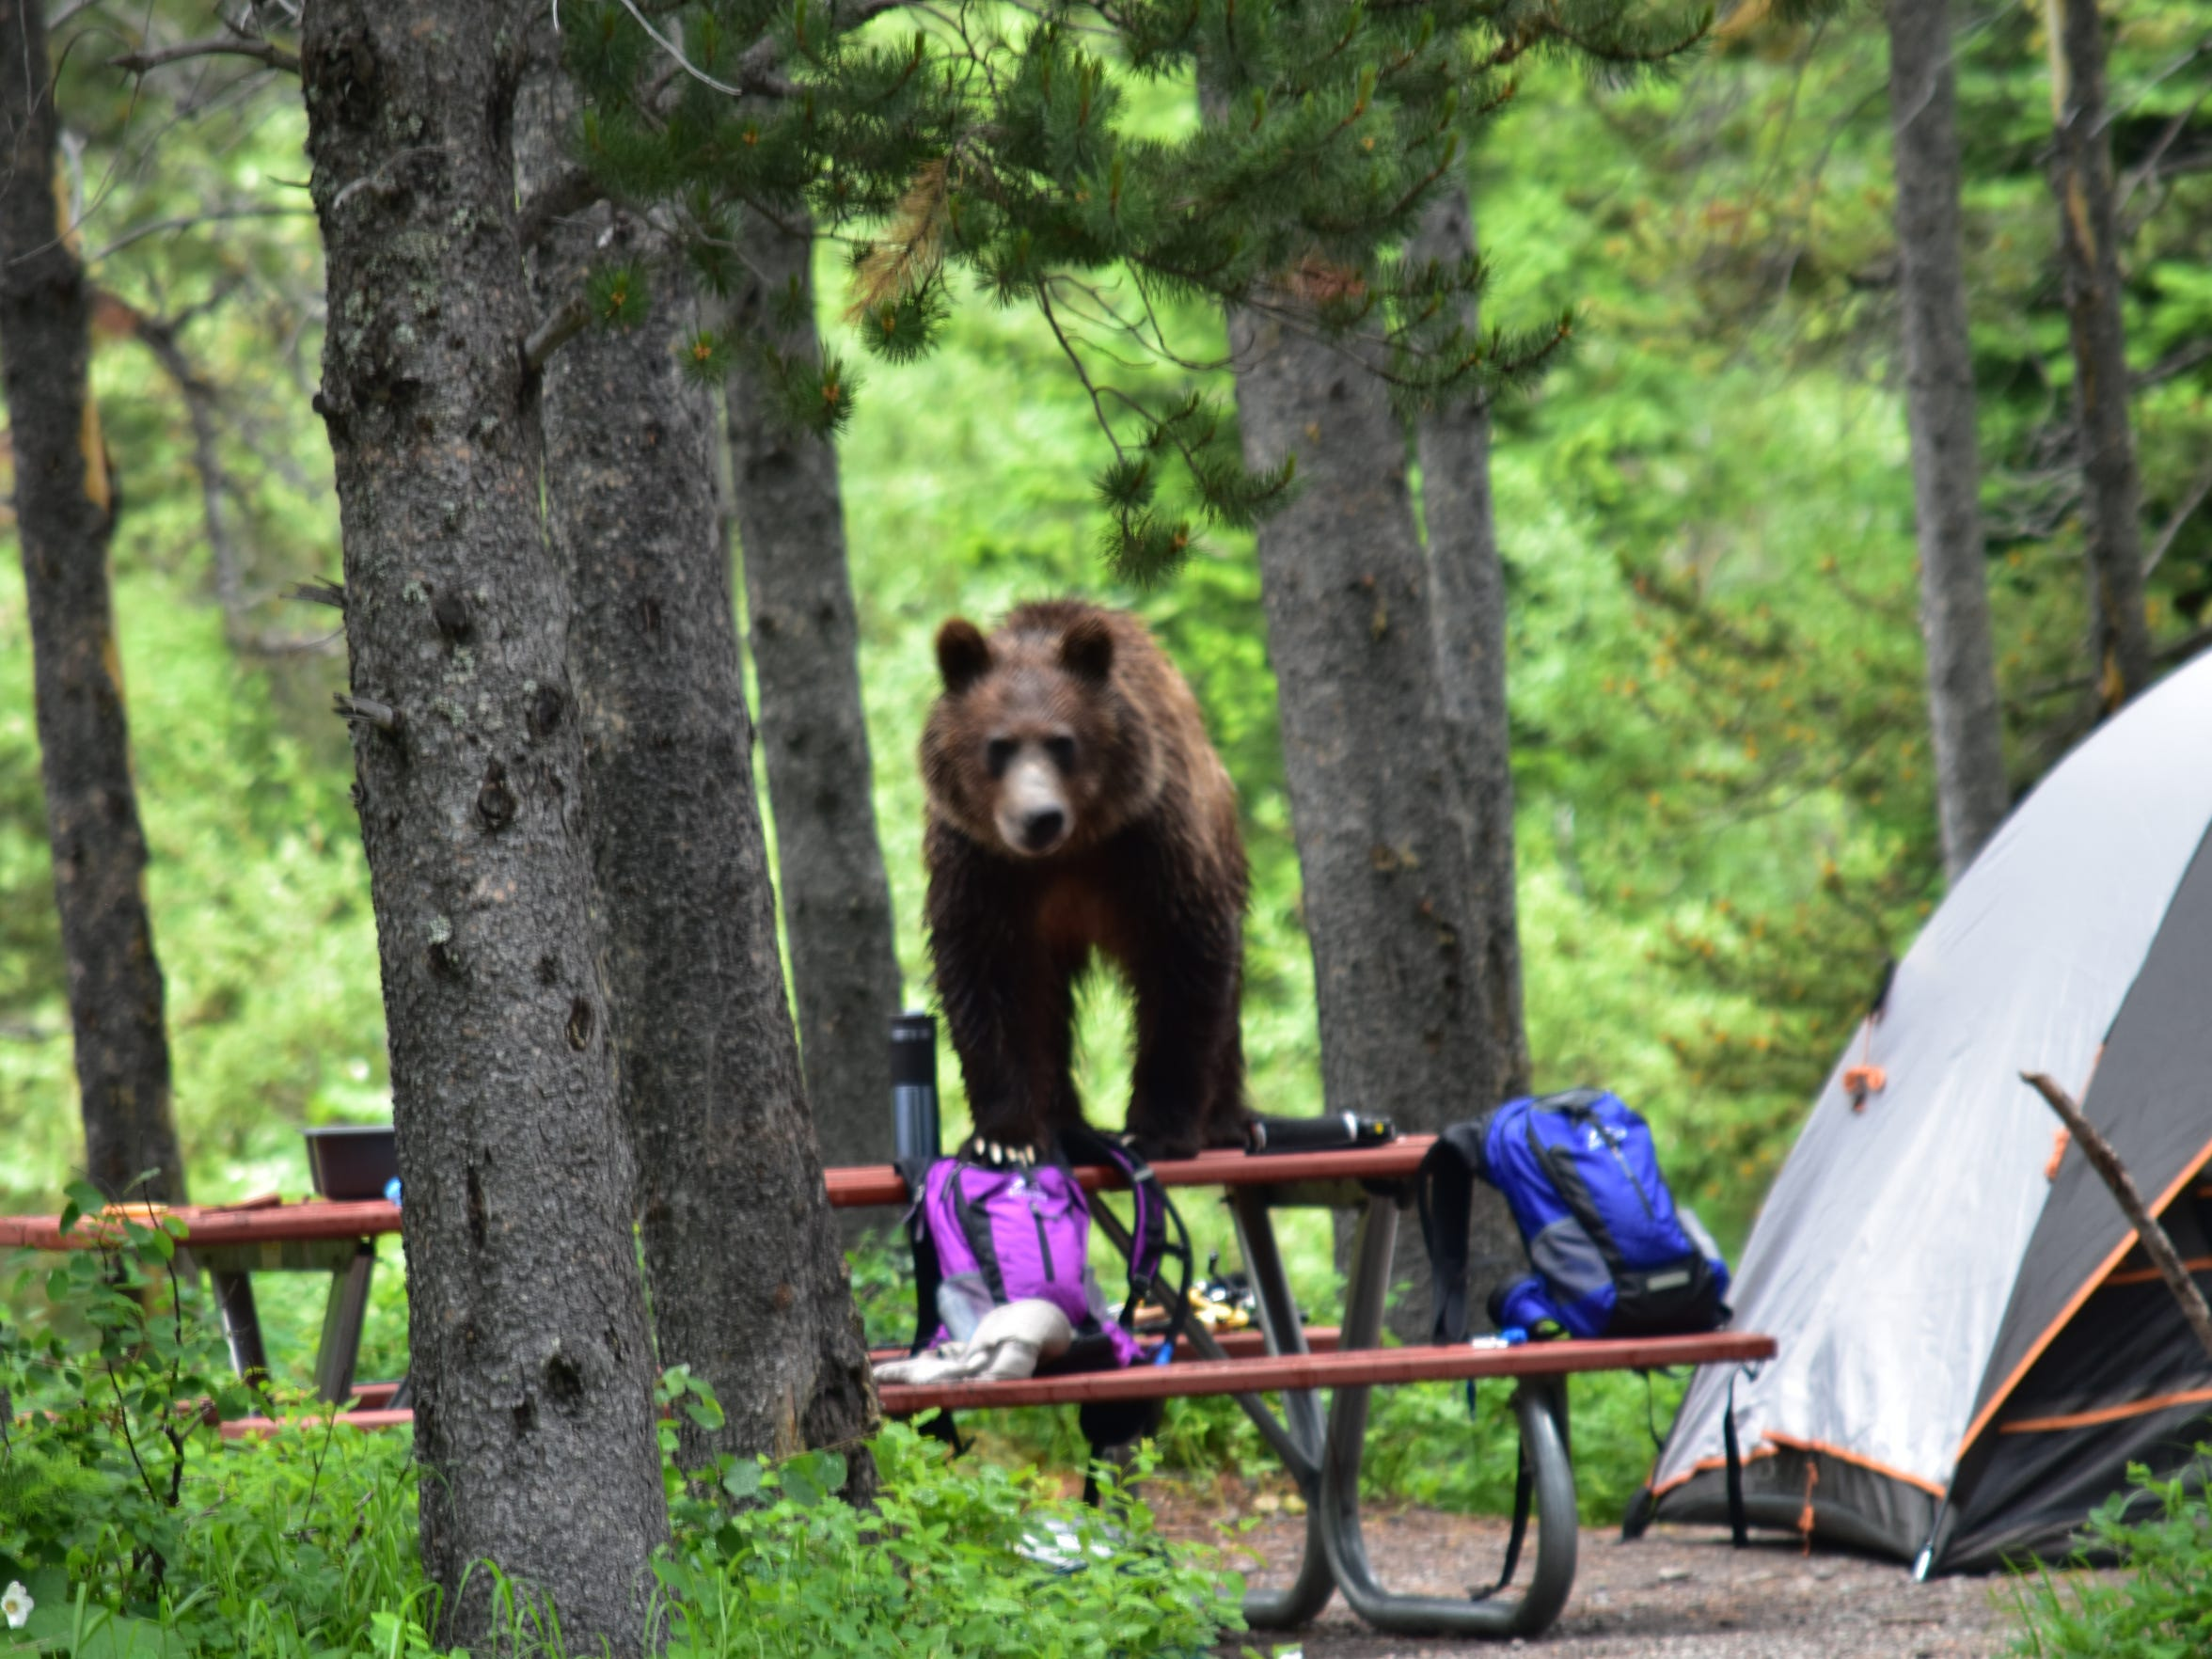 A grizzly climbed on top of a picnic table and consumed fish Friday morning at Many Glacier Campground in Glacier National Park.